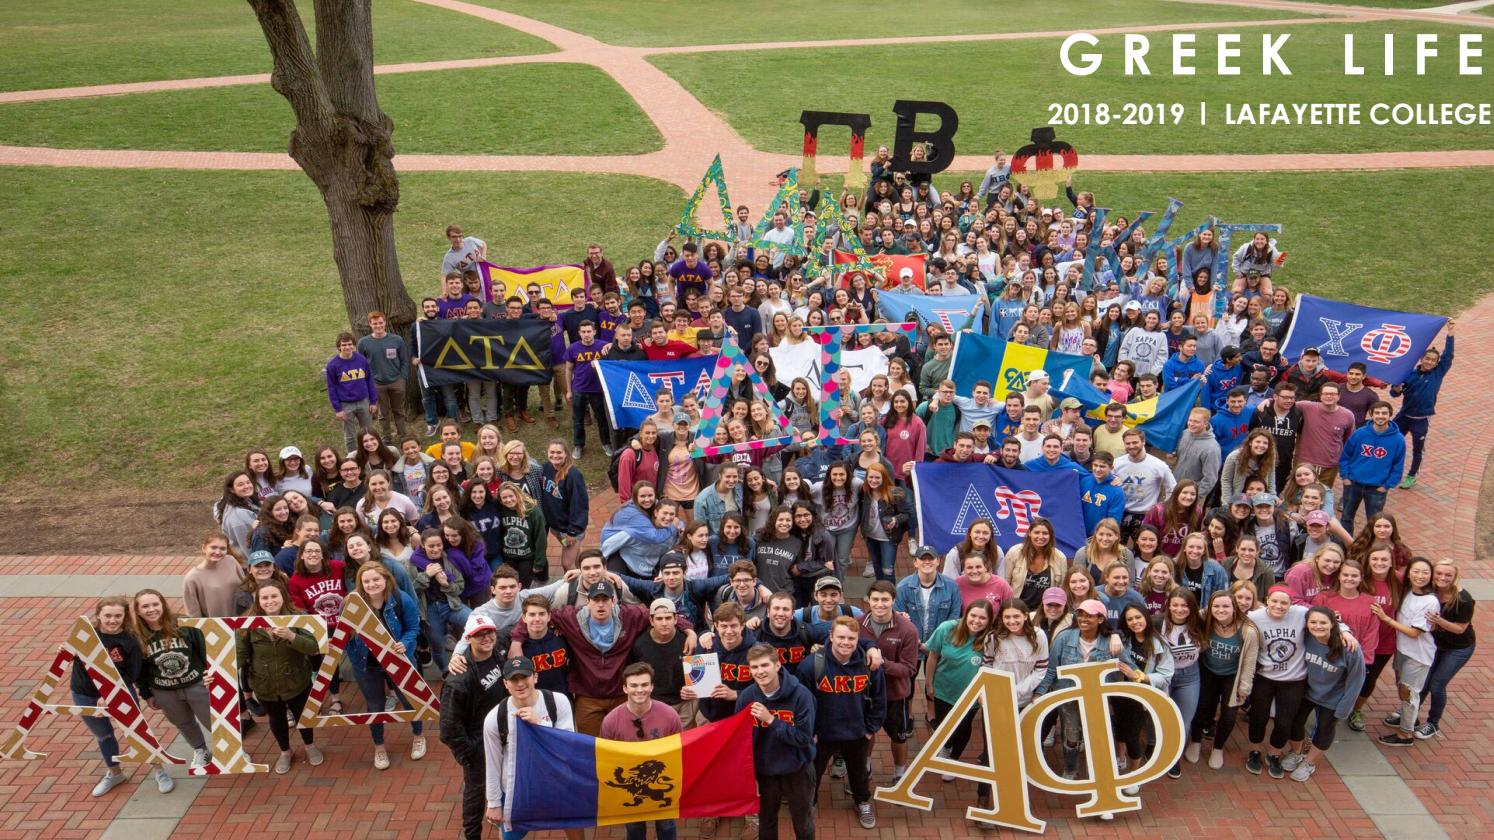 speech on greek life Homecoming, socials, parents weekend, and other greek activities have given me the opportunity to find out what is unique about each sorority, and i really find wonderful friends among them all we need to let other people know who we are.